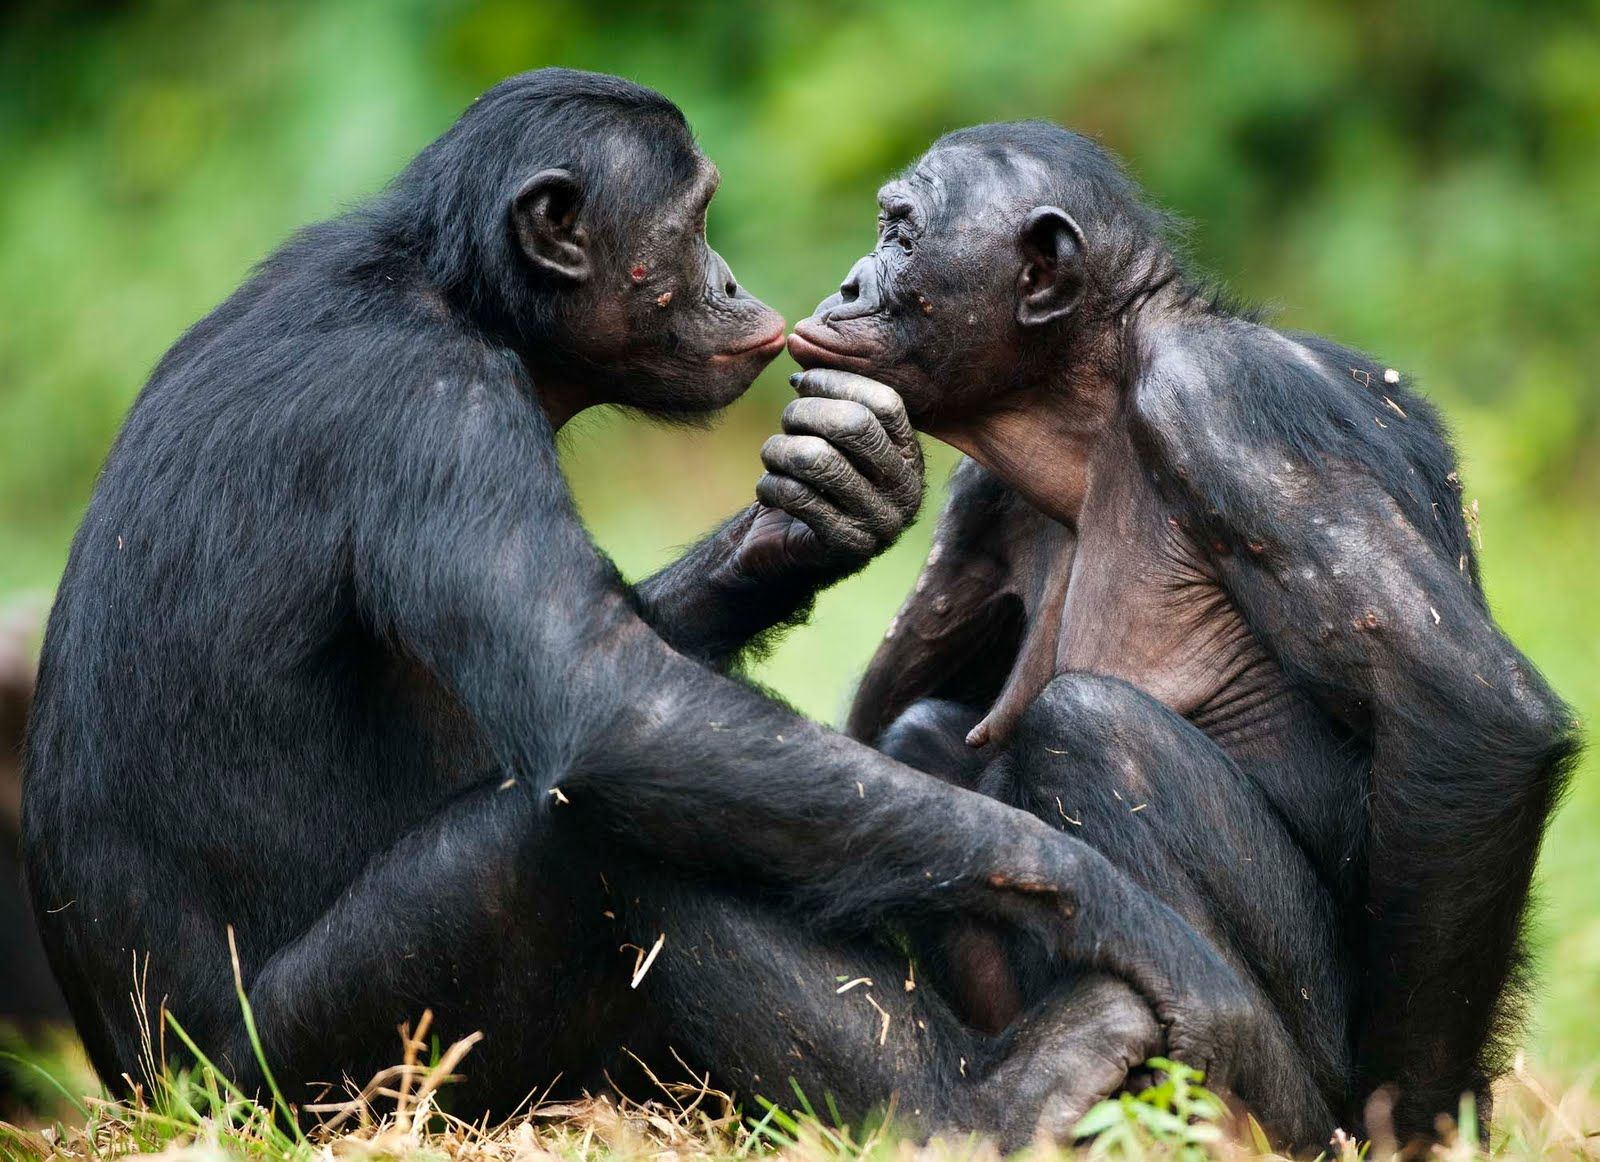 Animals Hd Wallpapers 2015 Funny Kissing Hugging Baby: Primate, Monkey And Animal